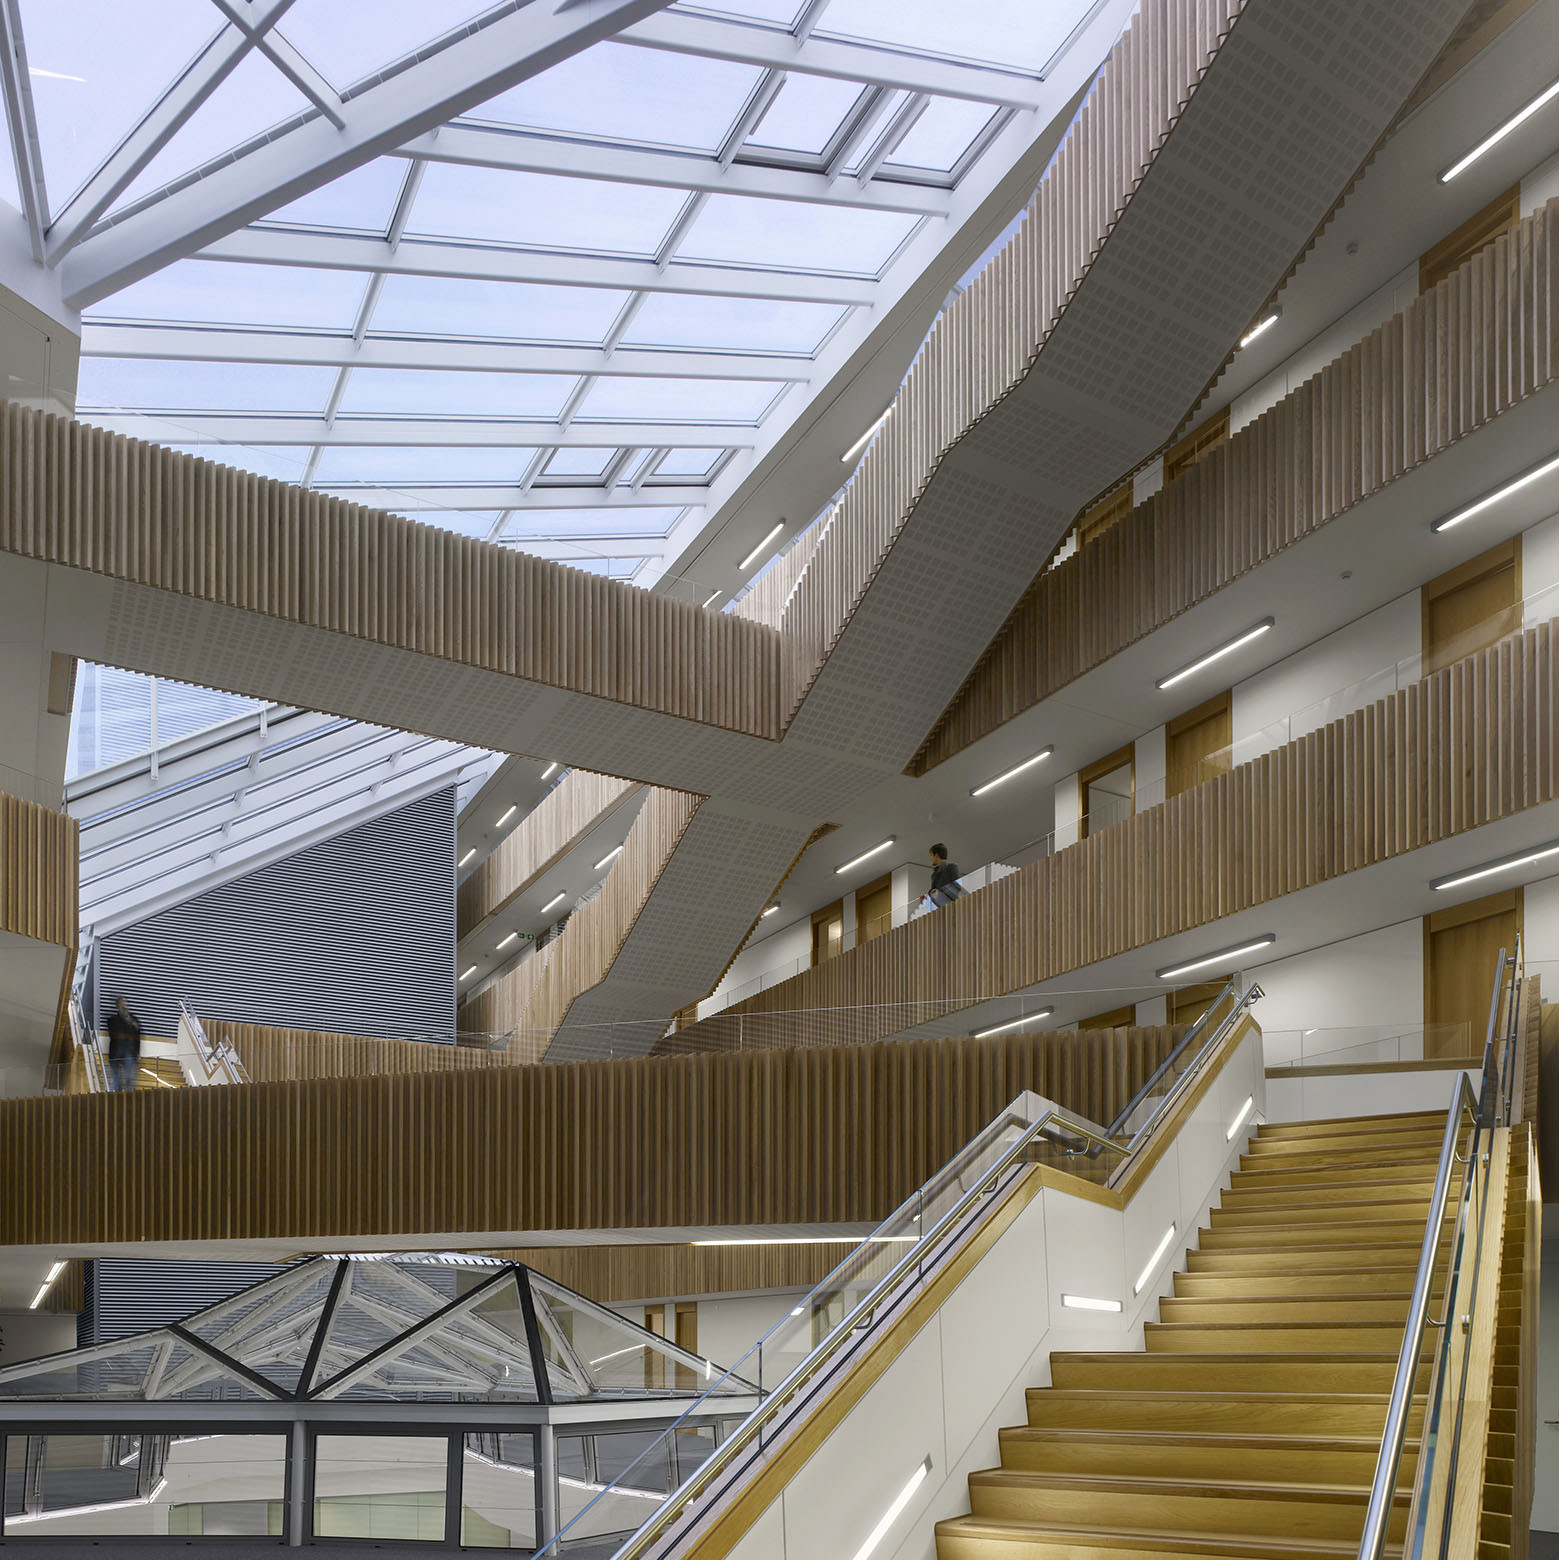 University of Oxford Mathematical Institute / Rafael Viñoly Architects, © Will Pryce